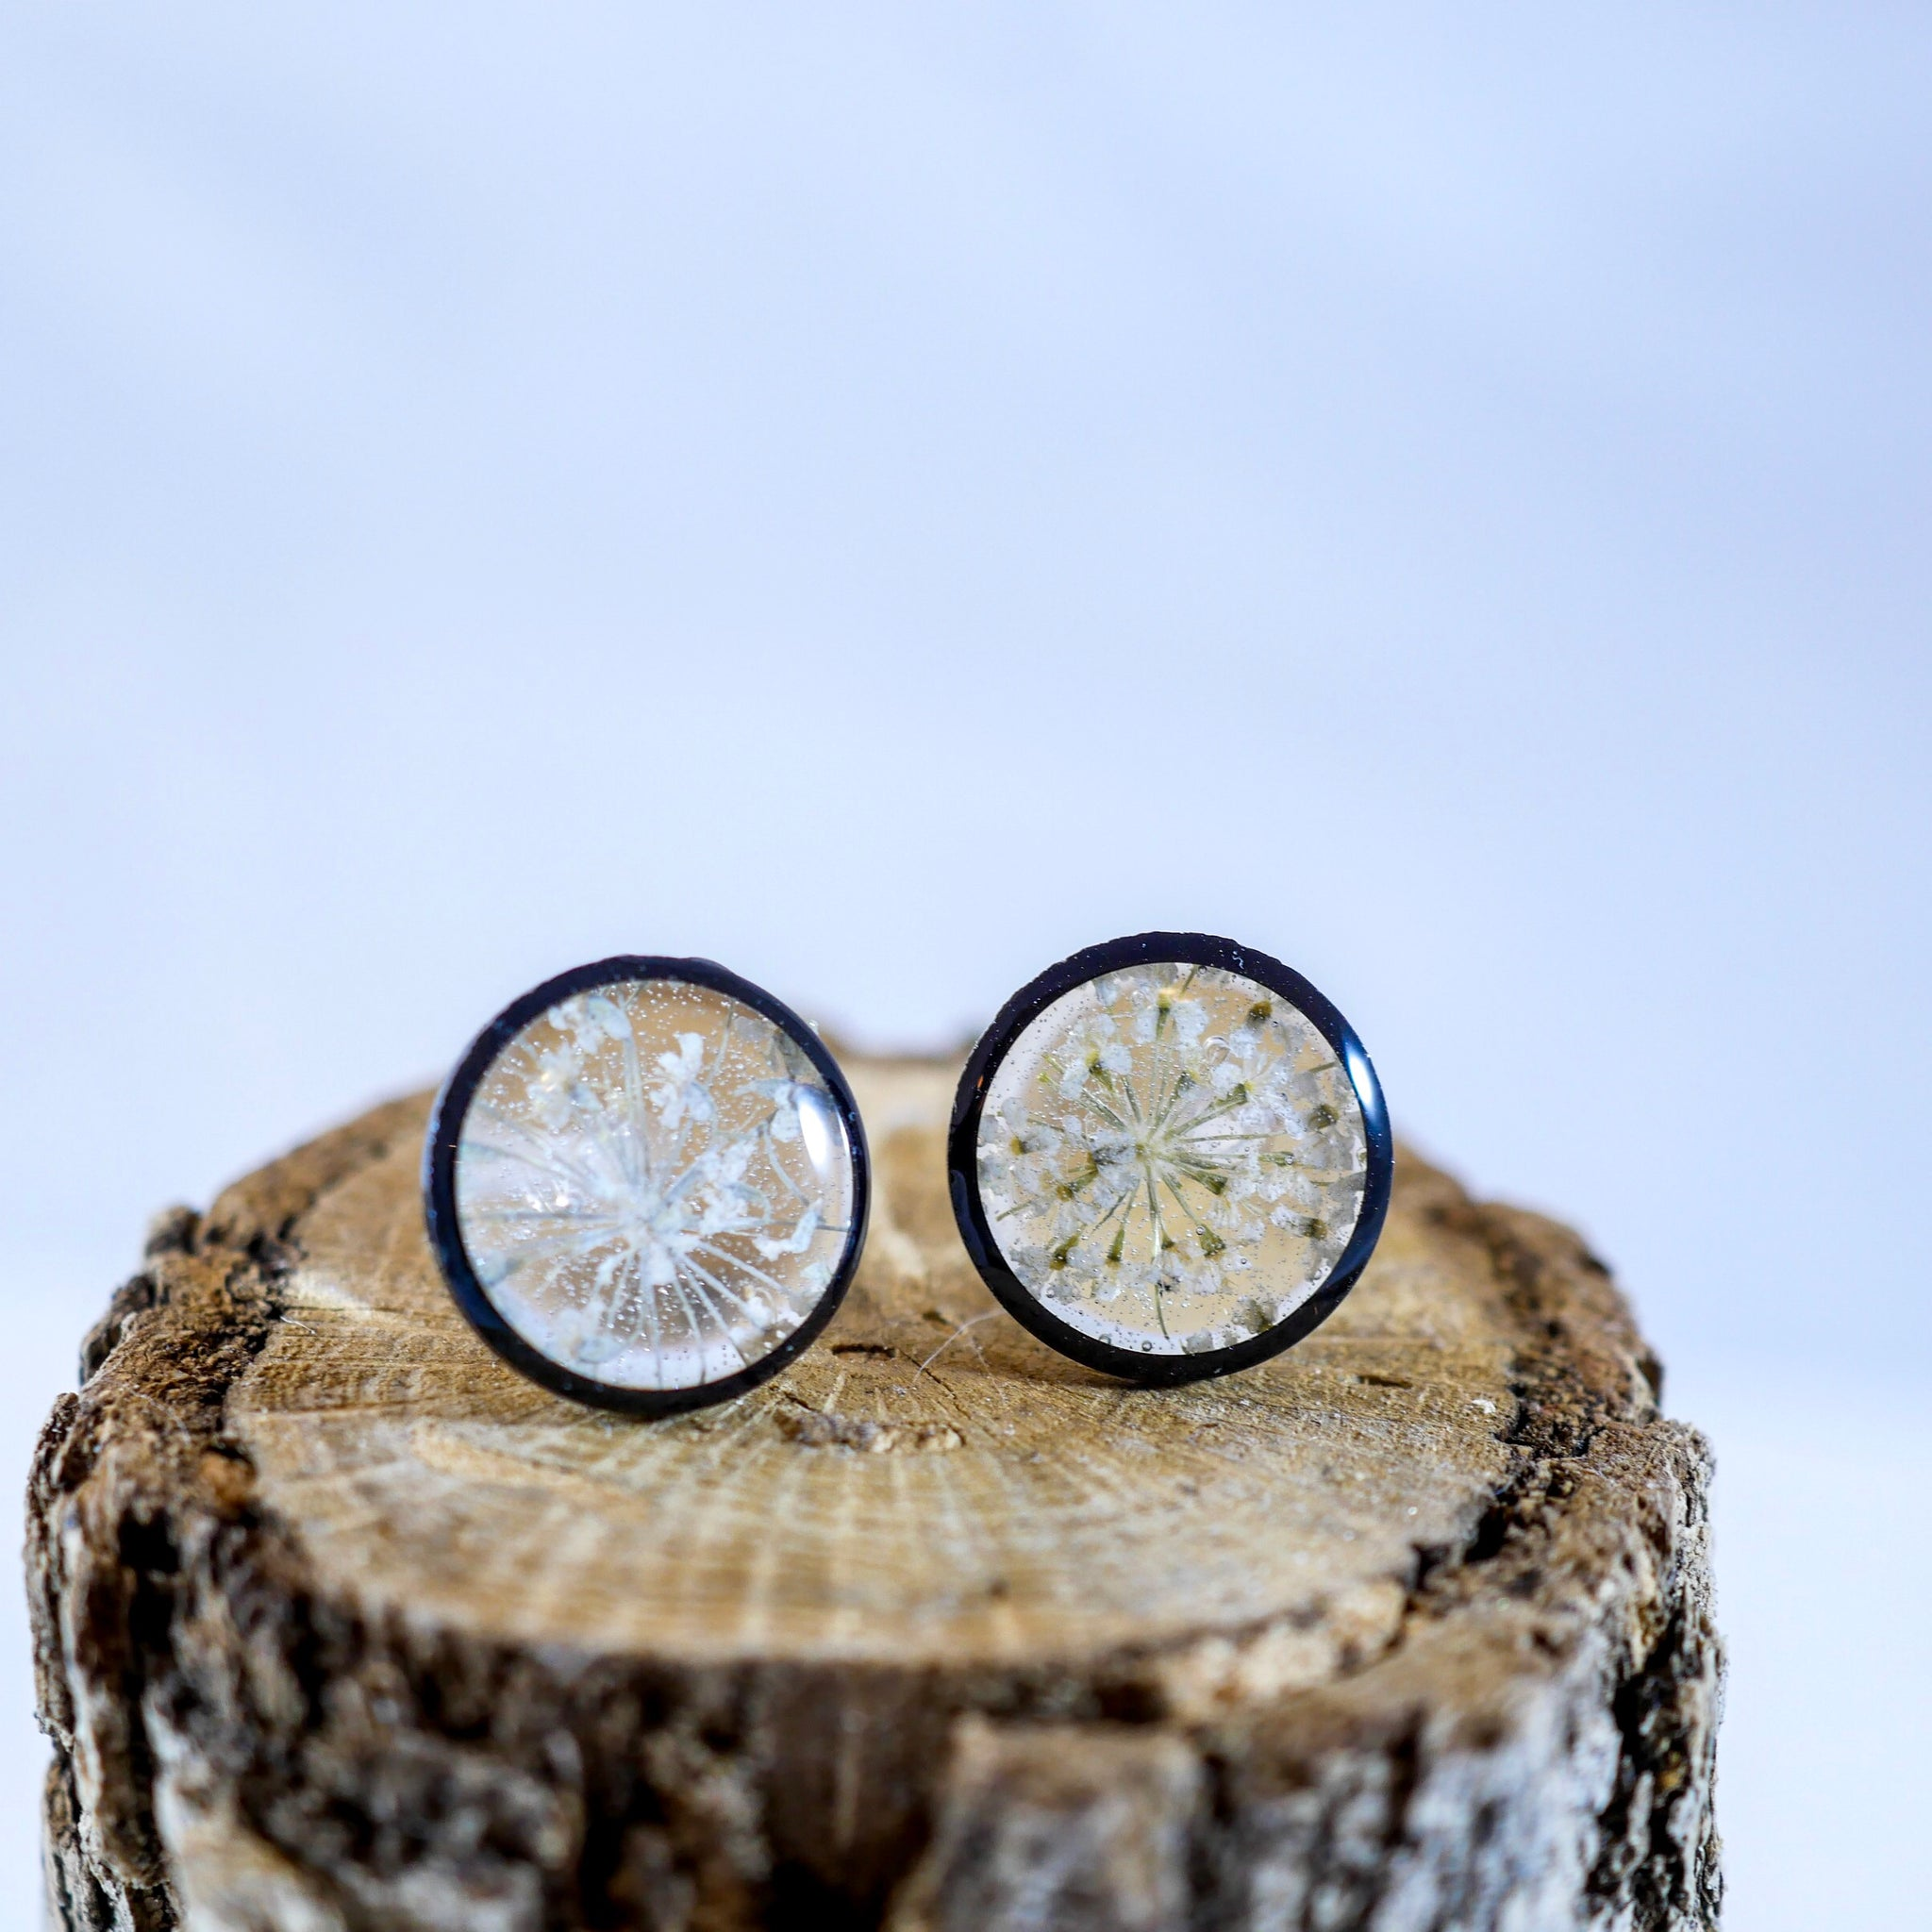 Black and white Queen Annes Lace Stud Earrings